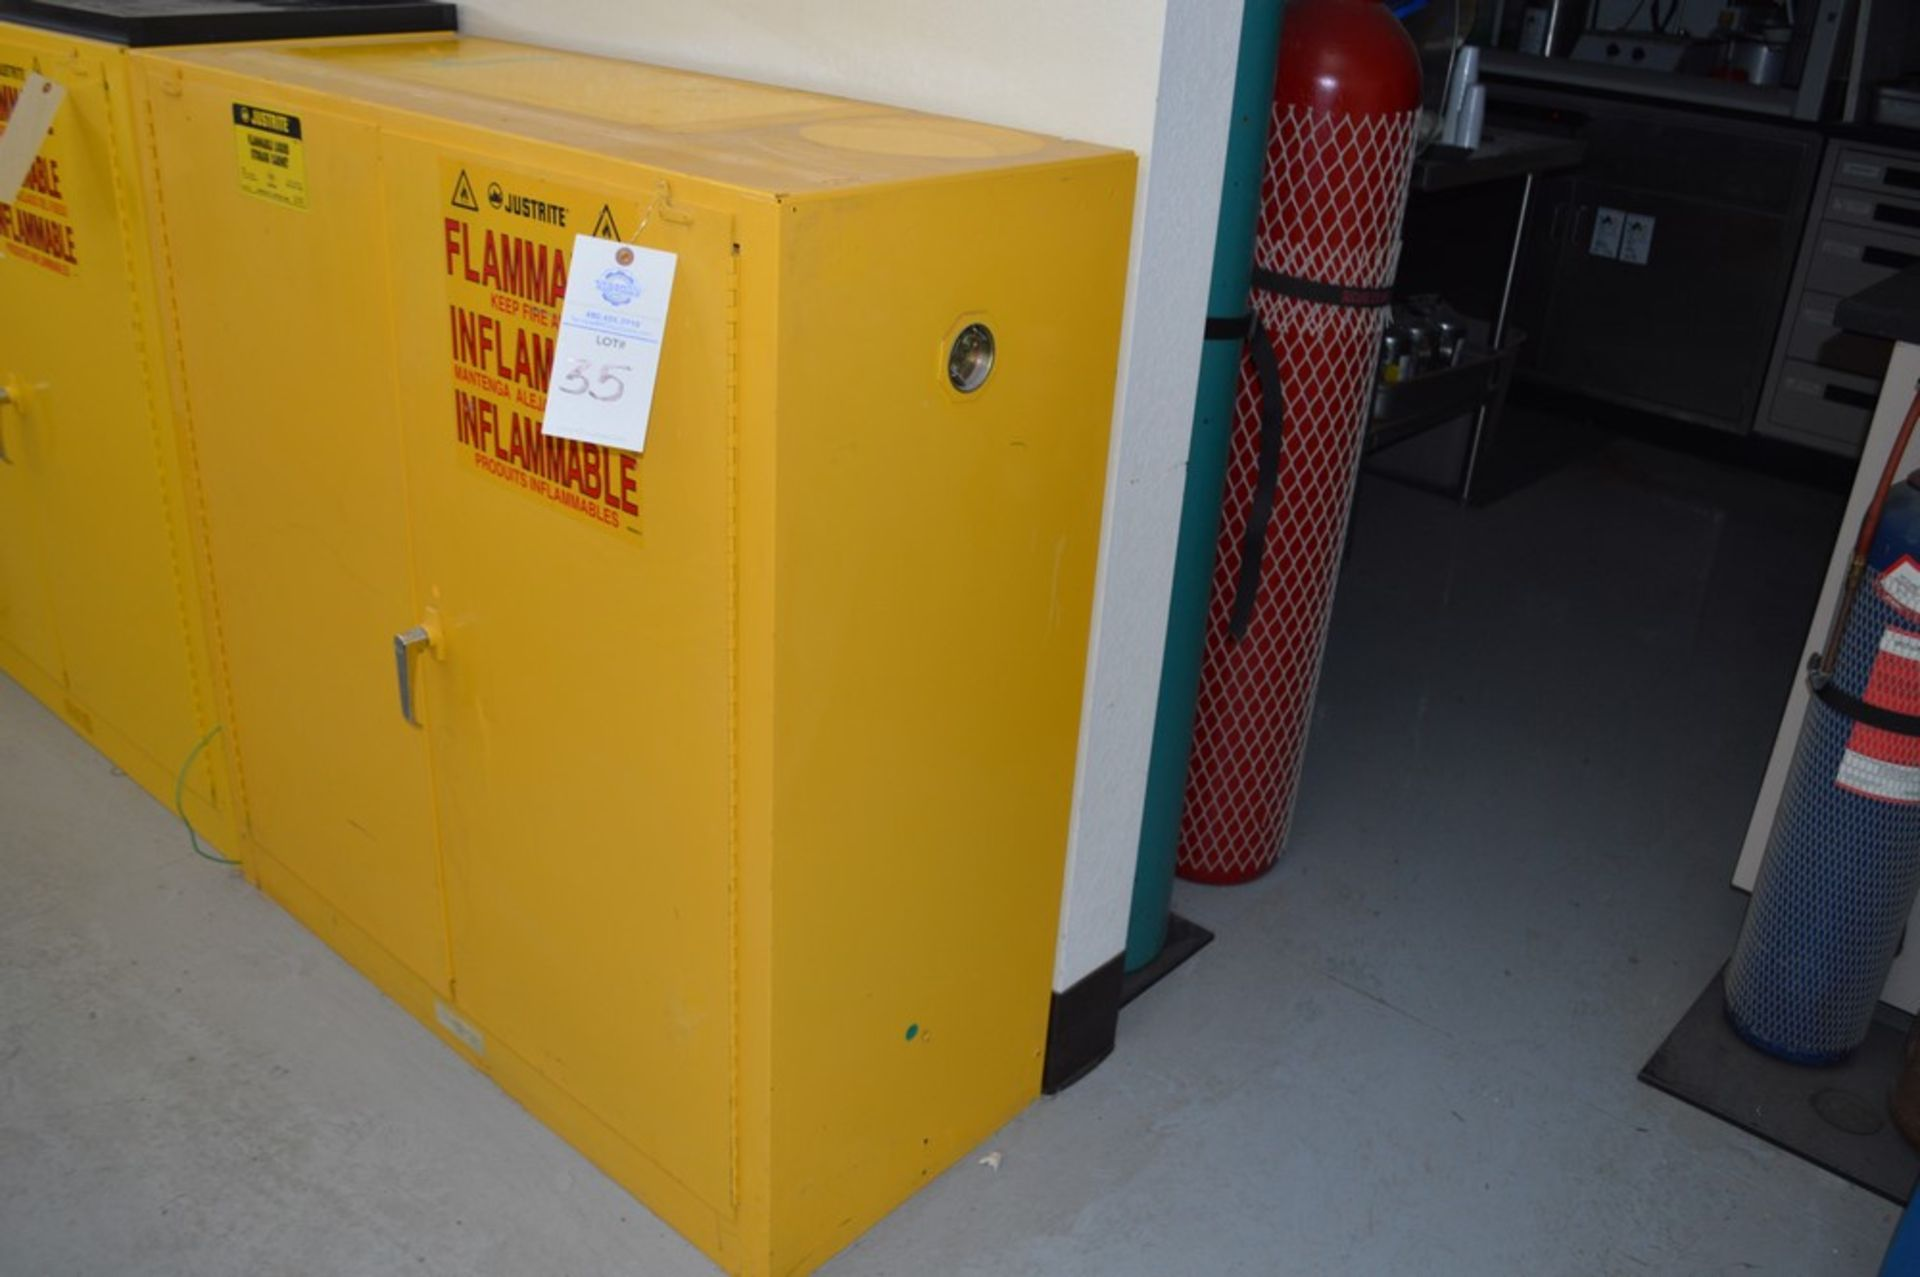 Just Rite flammable storage cabinet (no contents) 18 x 43 x 45